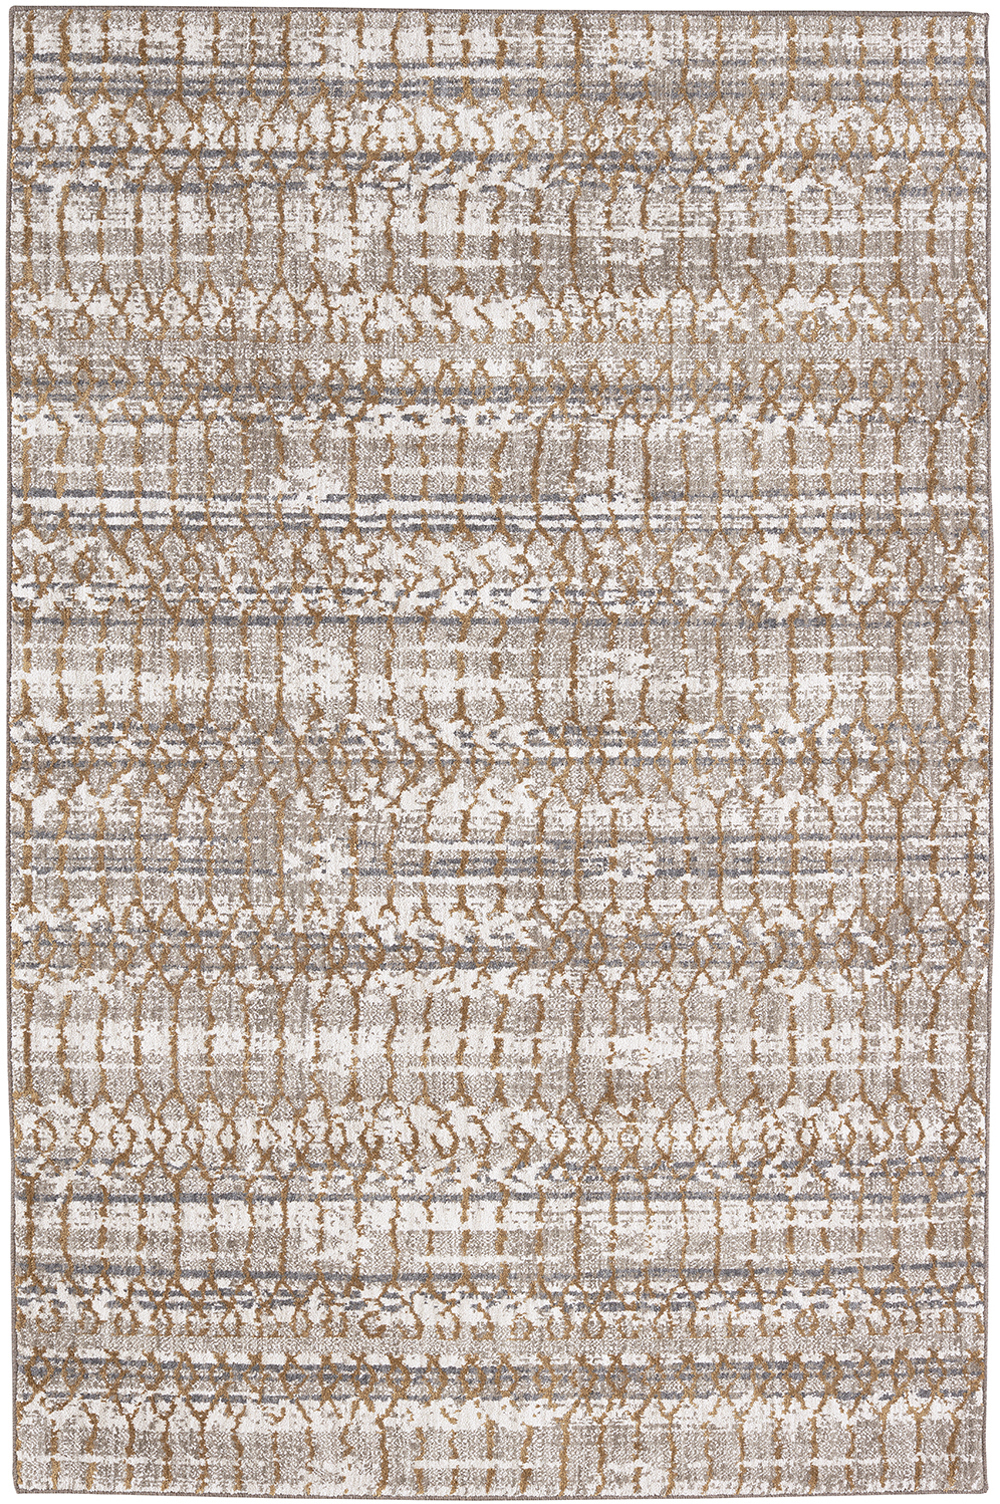 Karastan Cosmopolitan Flirt Brushed Gold by Patina Vie Antique White Rug